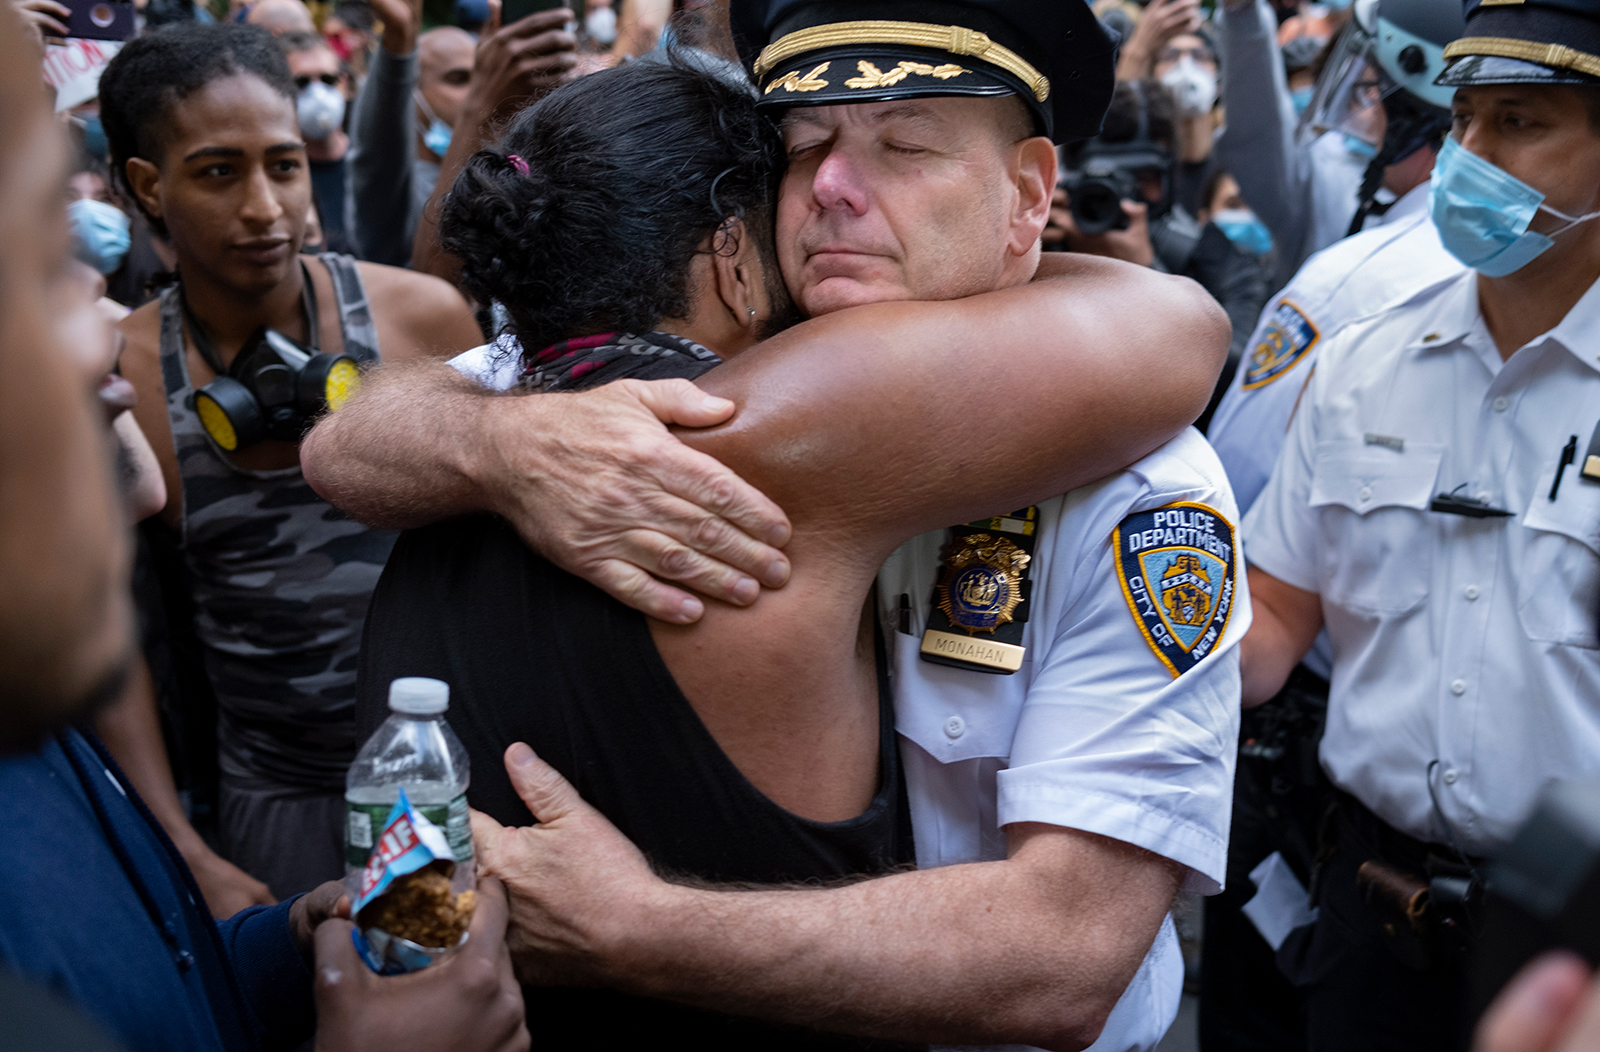 Police officers are joining protesters for prayers and hugs in several US cities